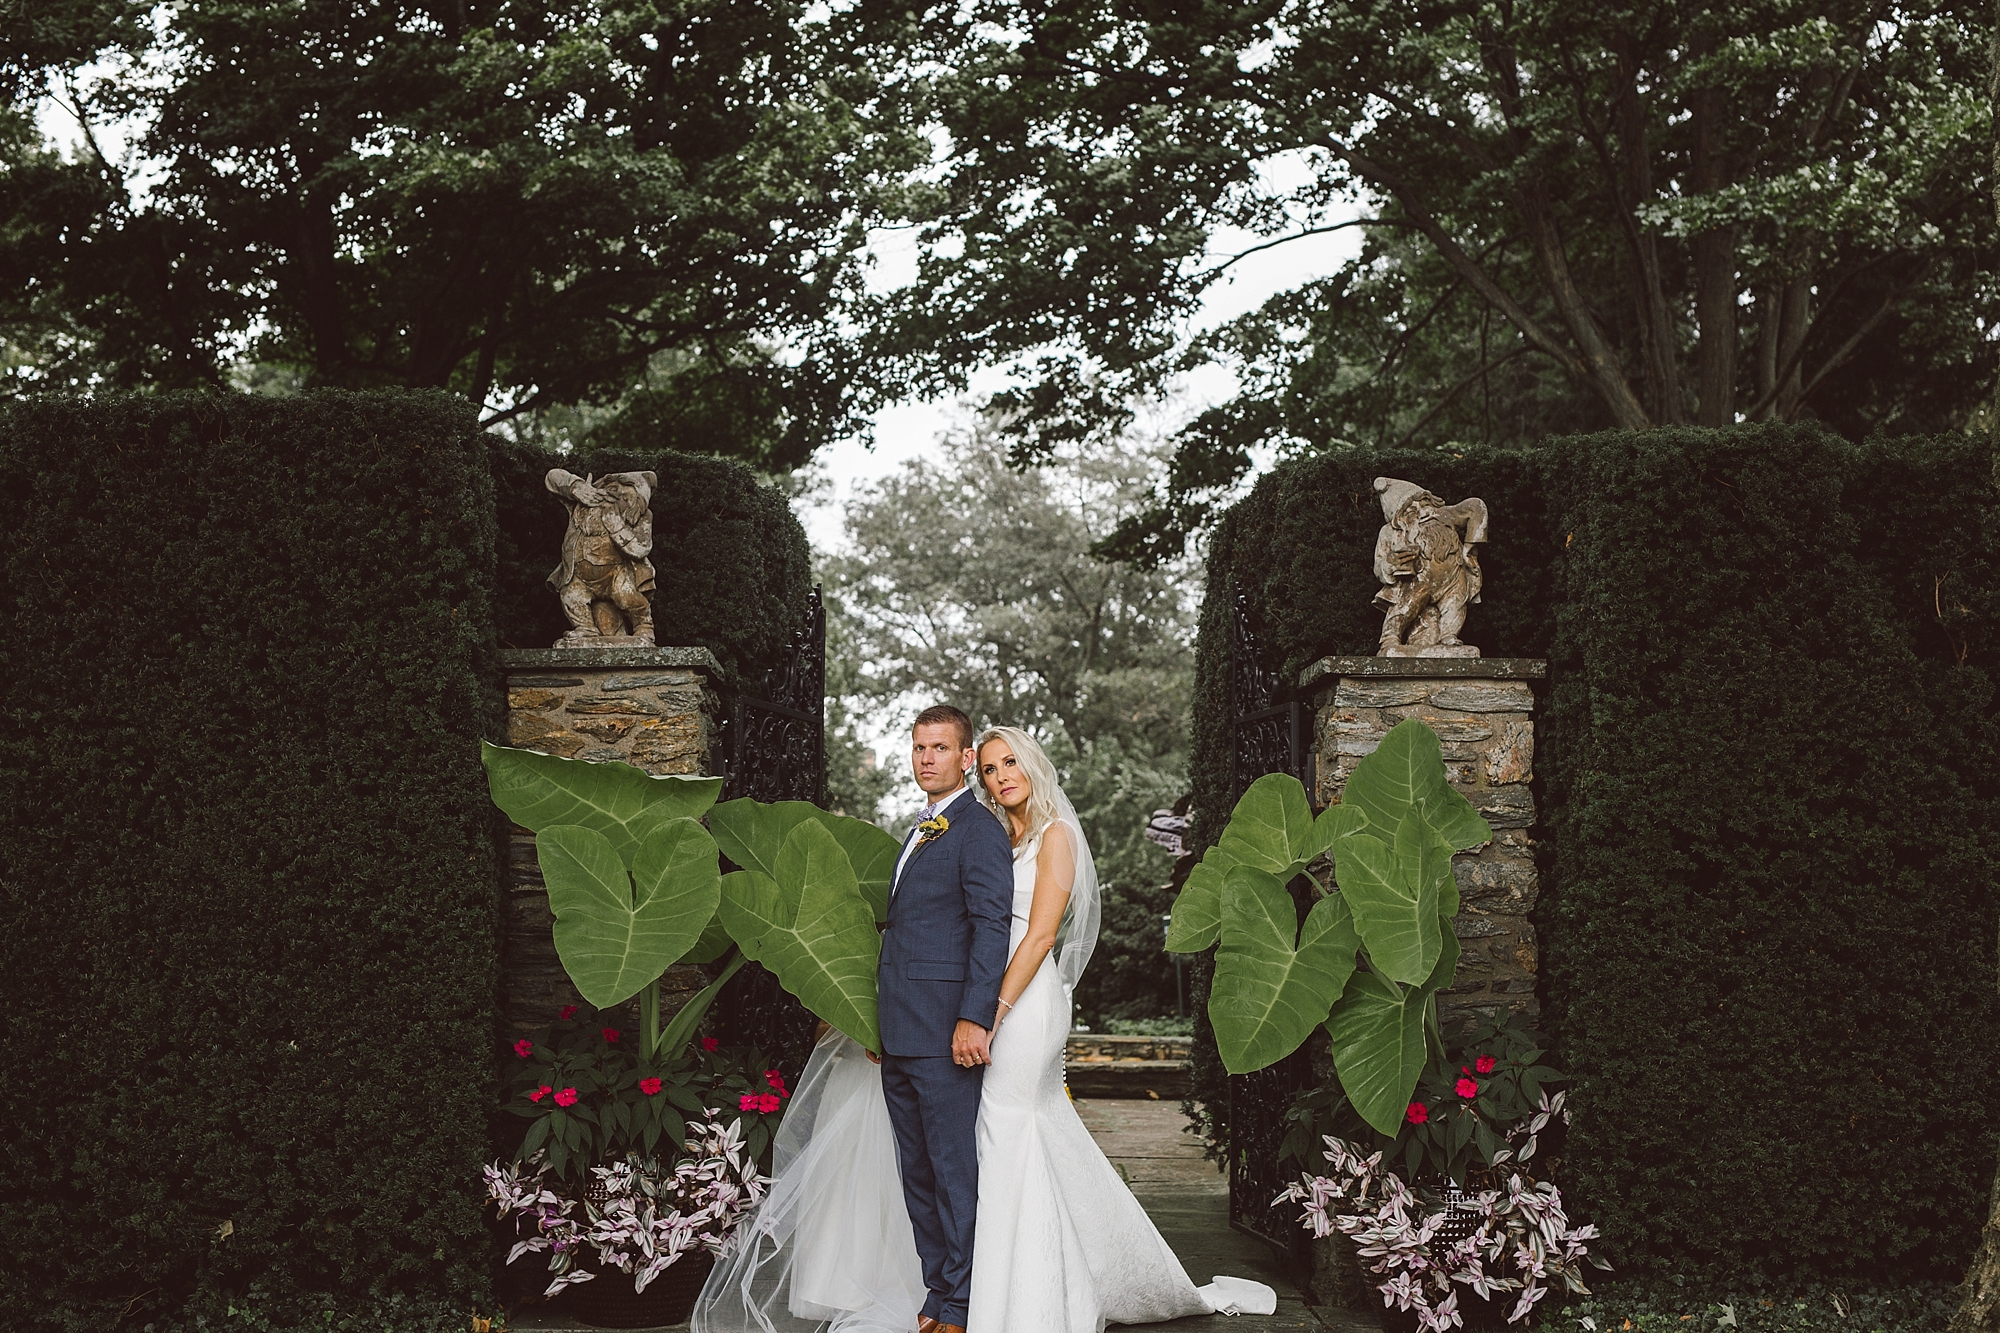 Druemore_Joe_Mac_Creative_Philadelphila_Wedding_Photography_drumore_estate_pequea_Best_lancaster_wedding_venues_0054.jpg